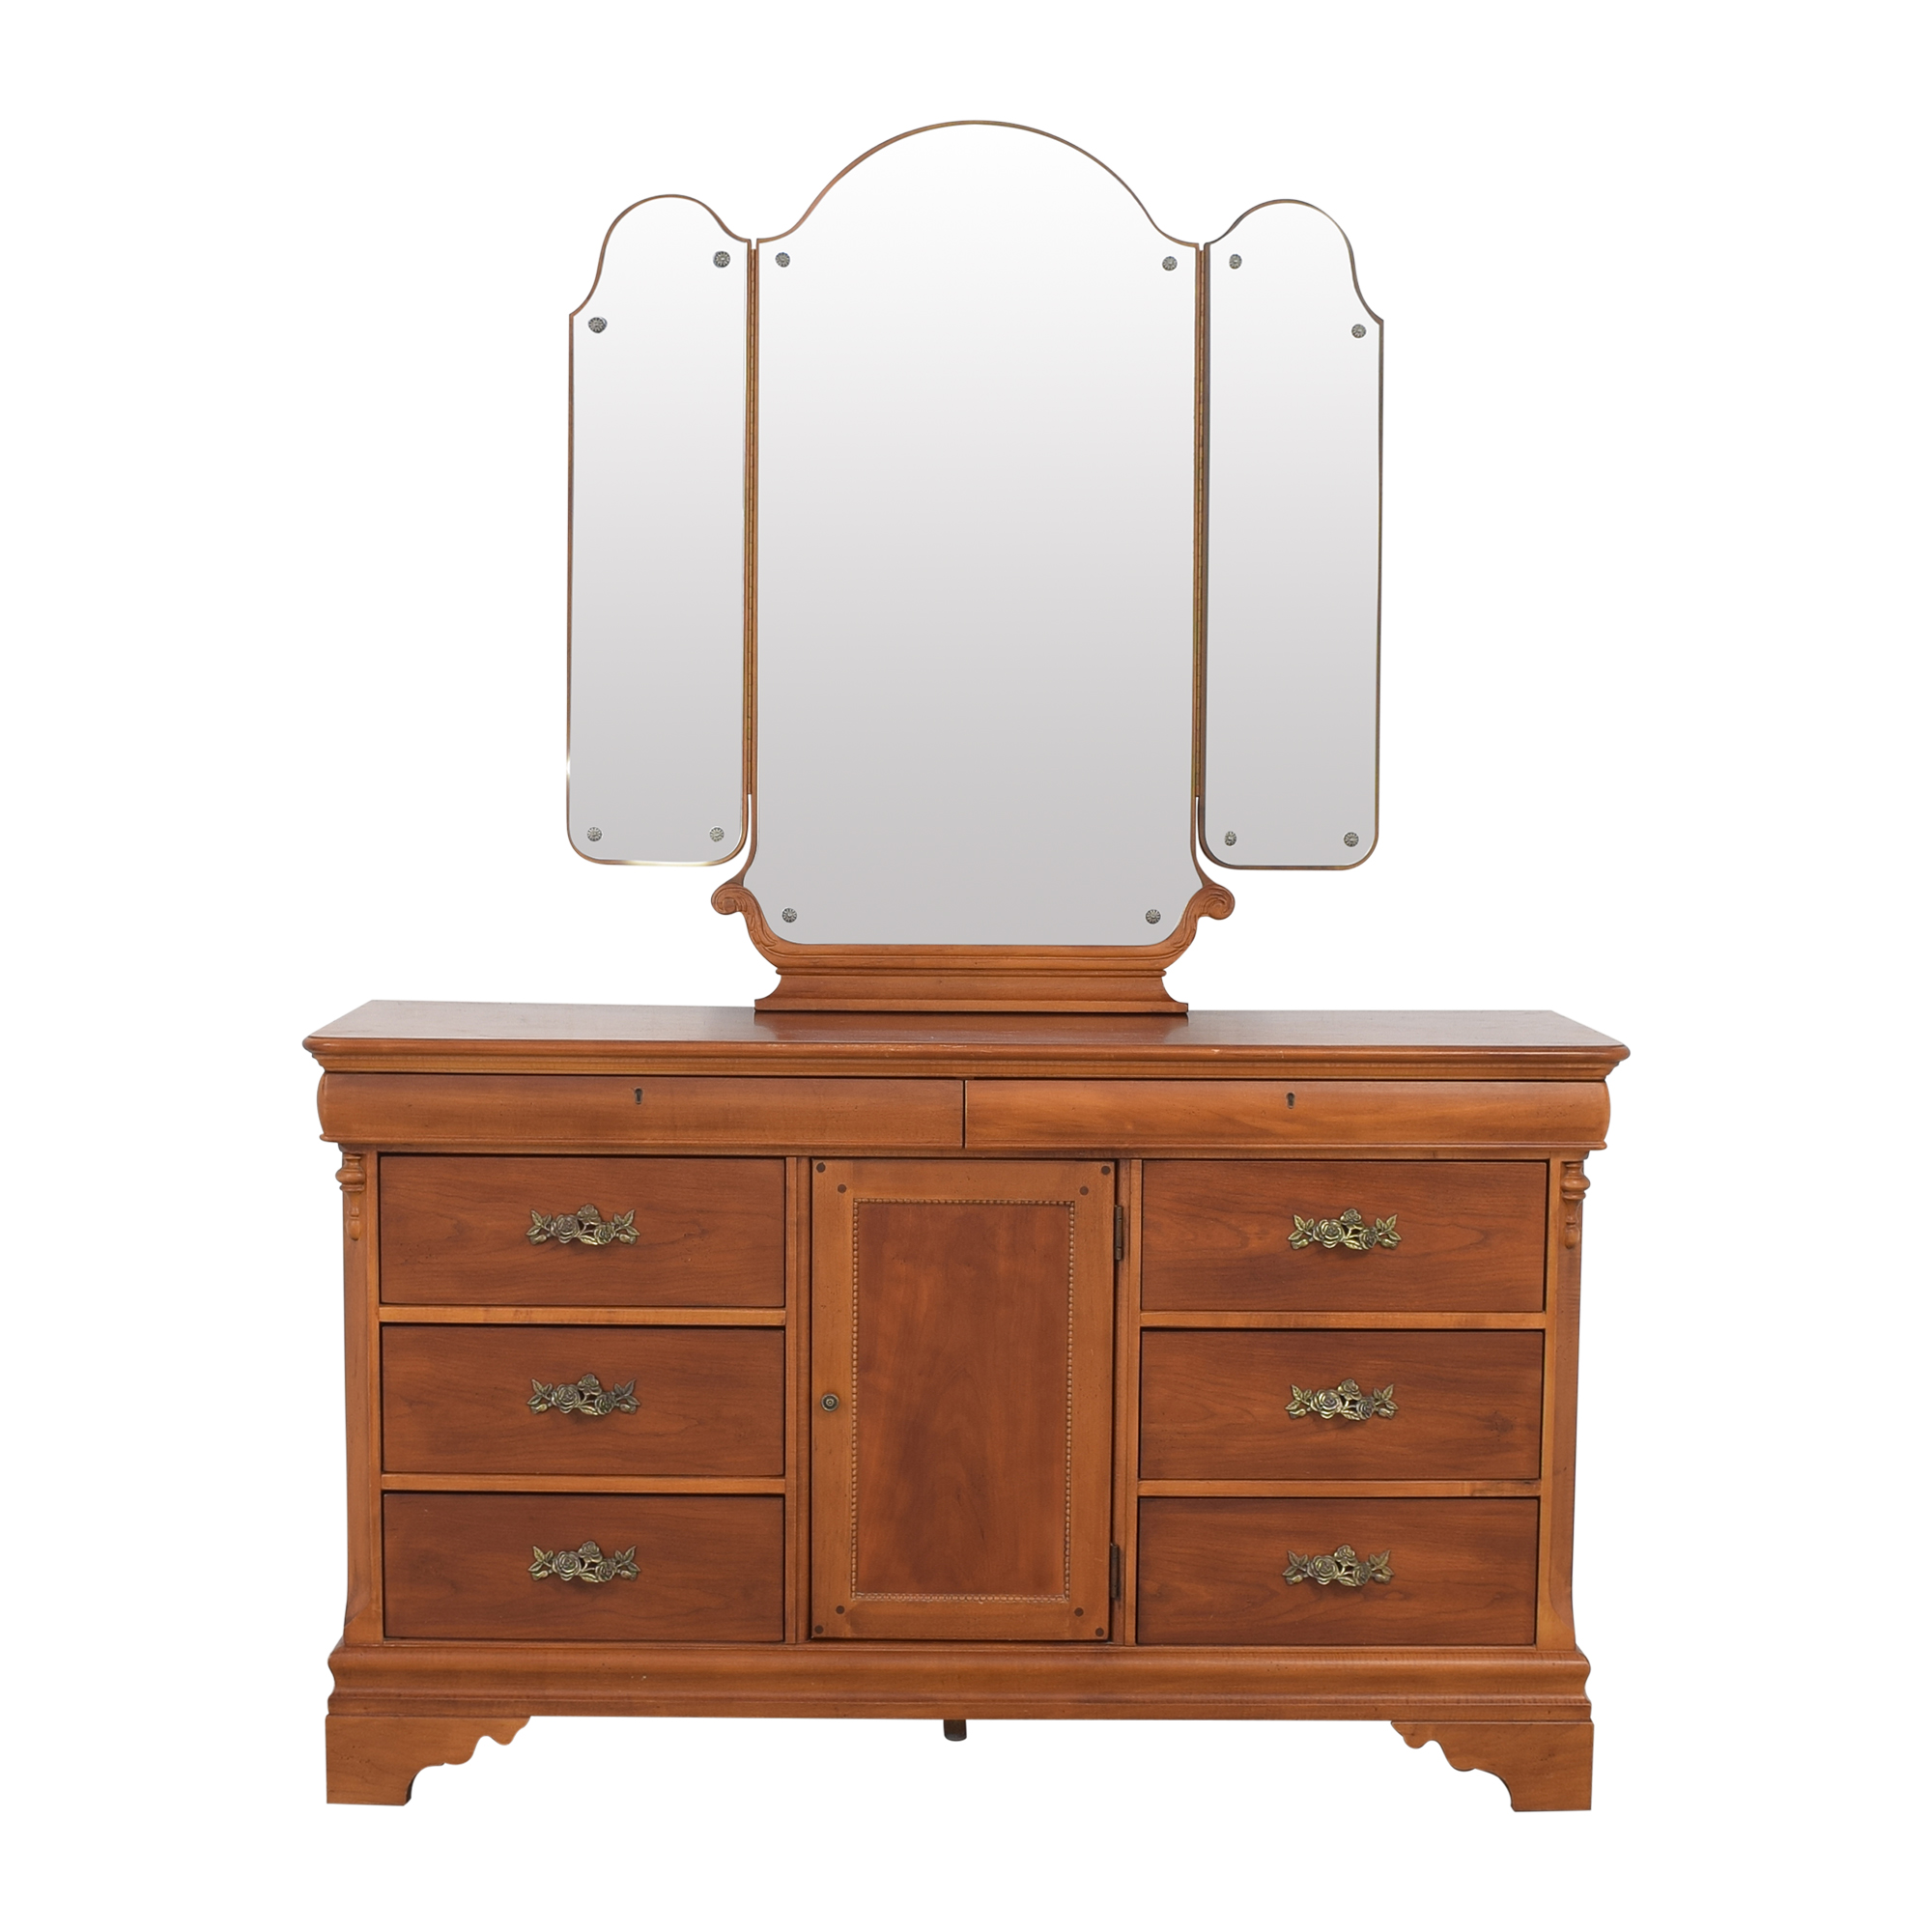 Lexington Furniture Betsy Cameron for Lexington Dresser with Mirror used